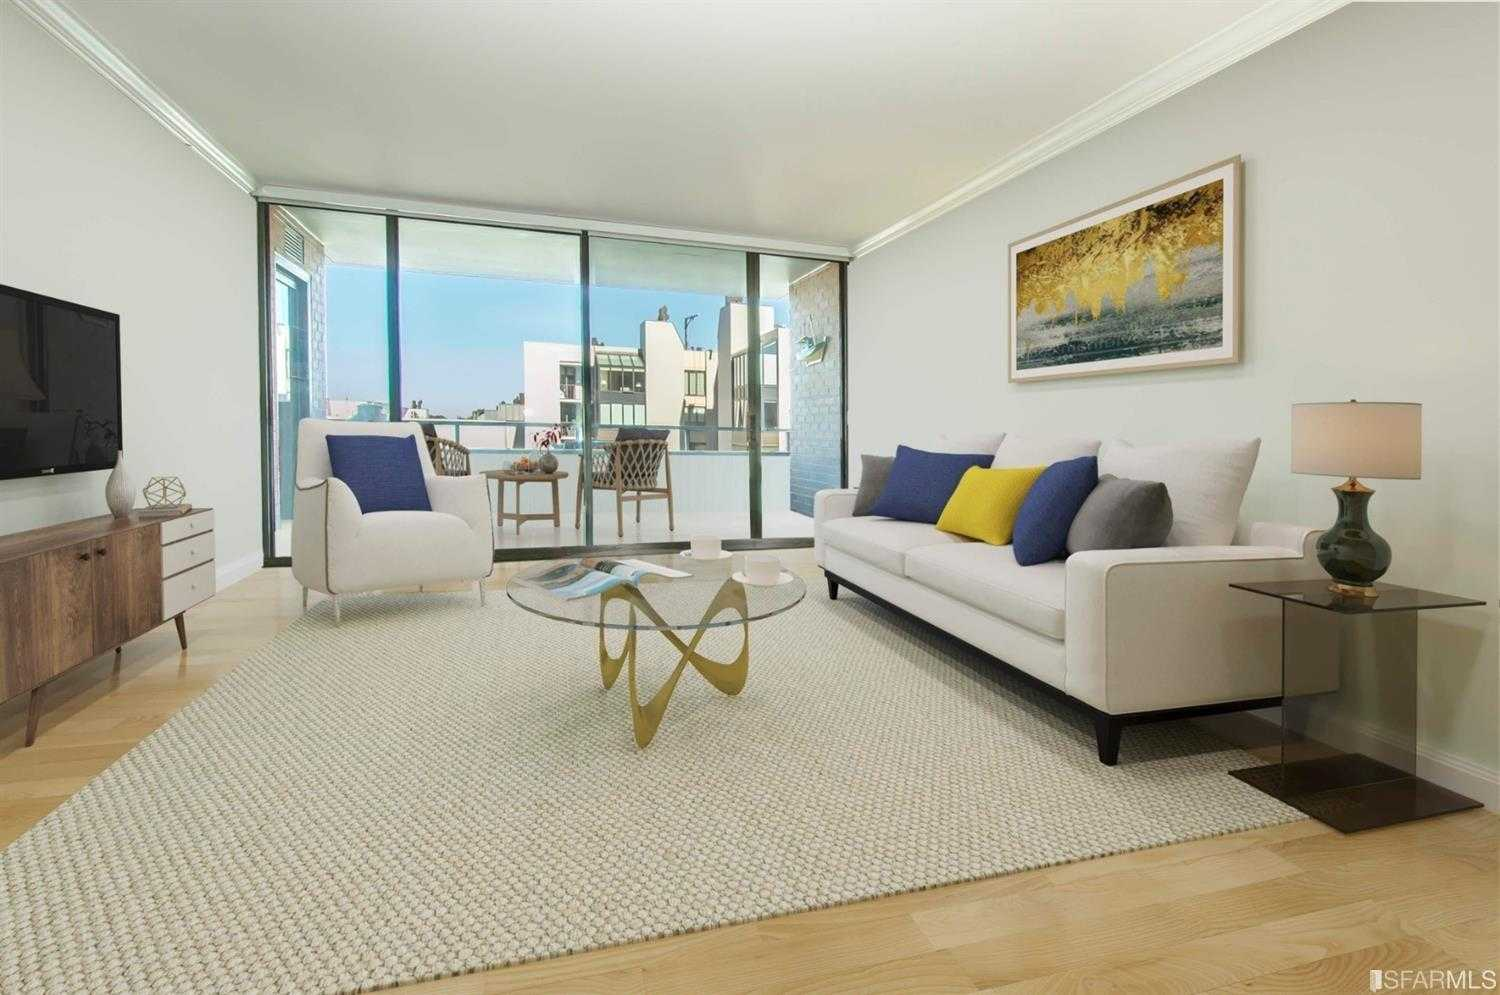 $1,475,000 - 2Br/2Ba -  for Sale in San Francisco